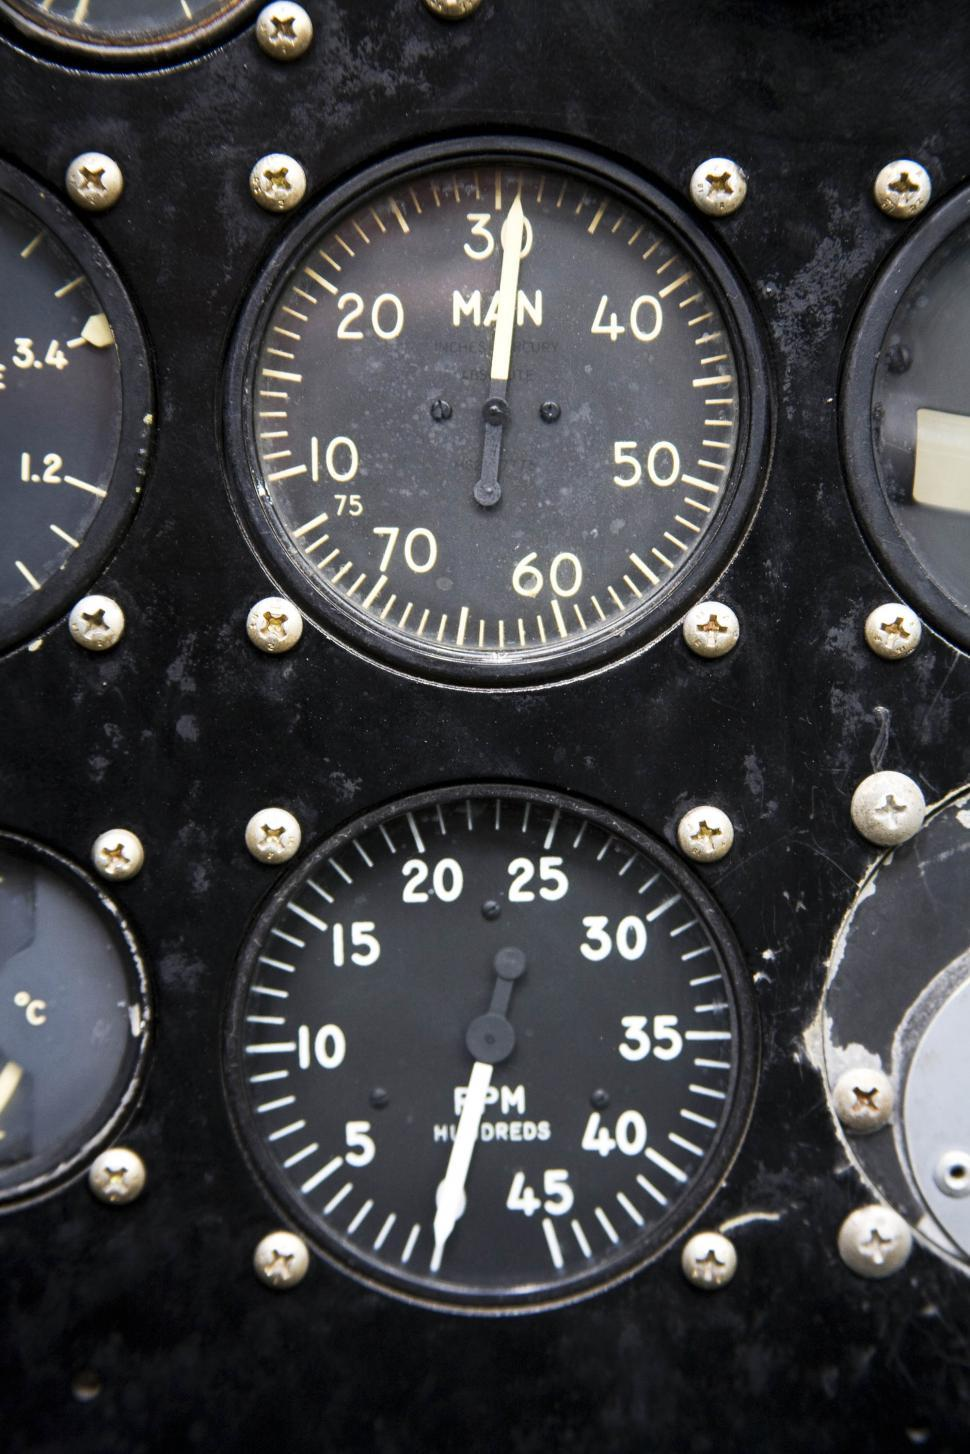 Download Free Stock HD Photo of different aircraft gauges Online